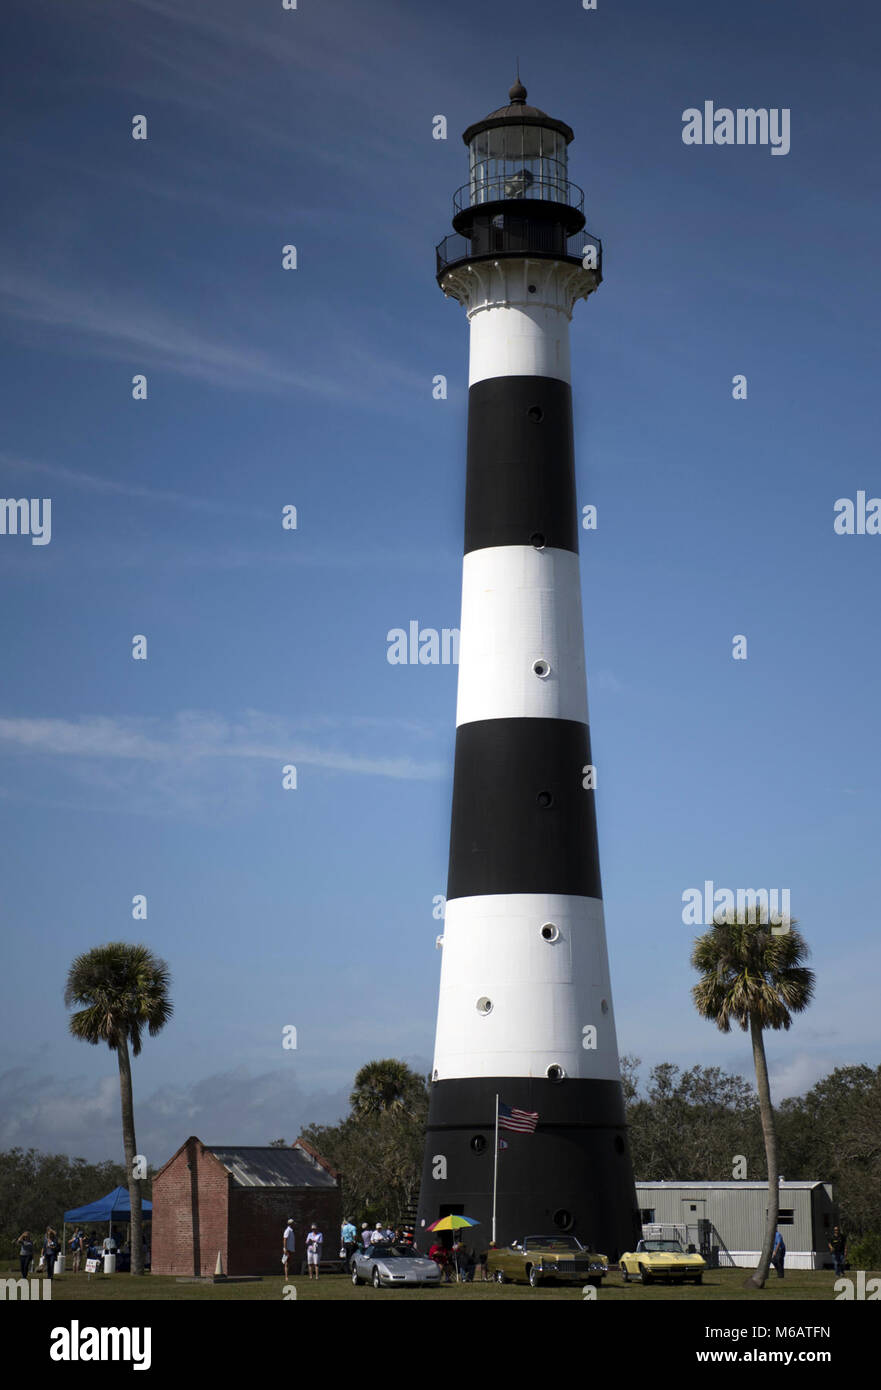 CAPE CANAVERAL LIGHTHOUSE - Florida USAF Working Replica | Lighthouse, Cape  canaveral, Famous lighthouses